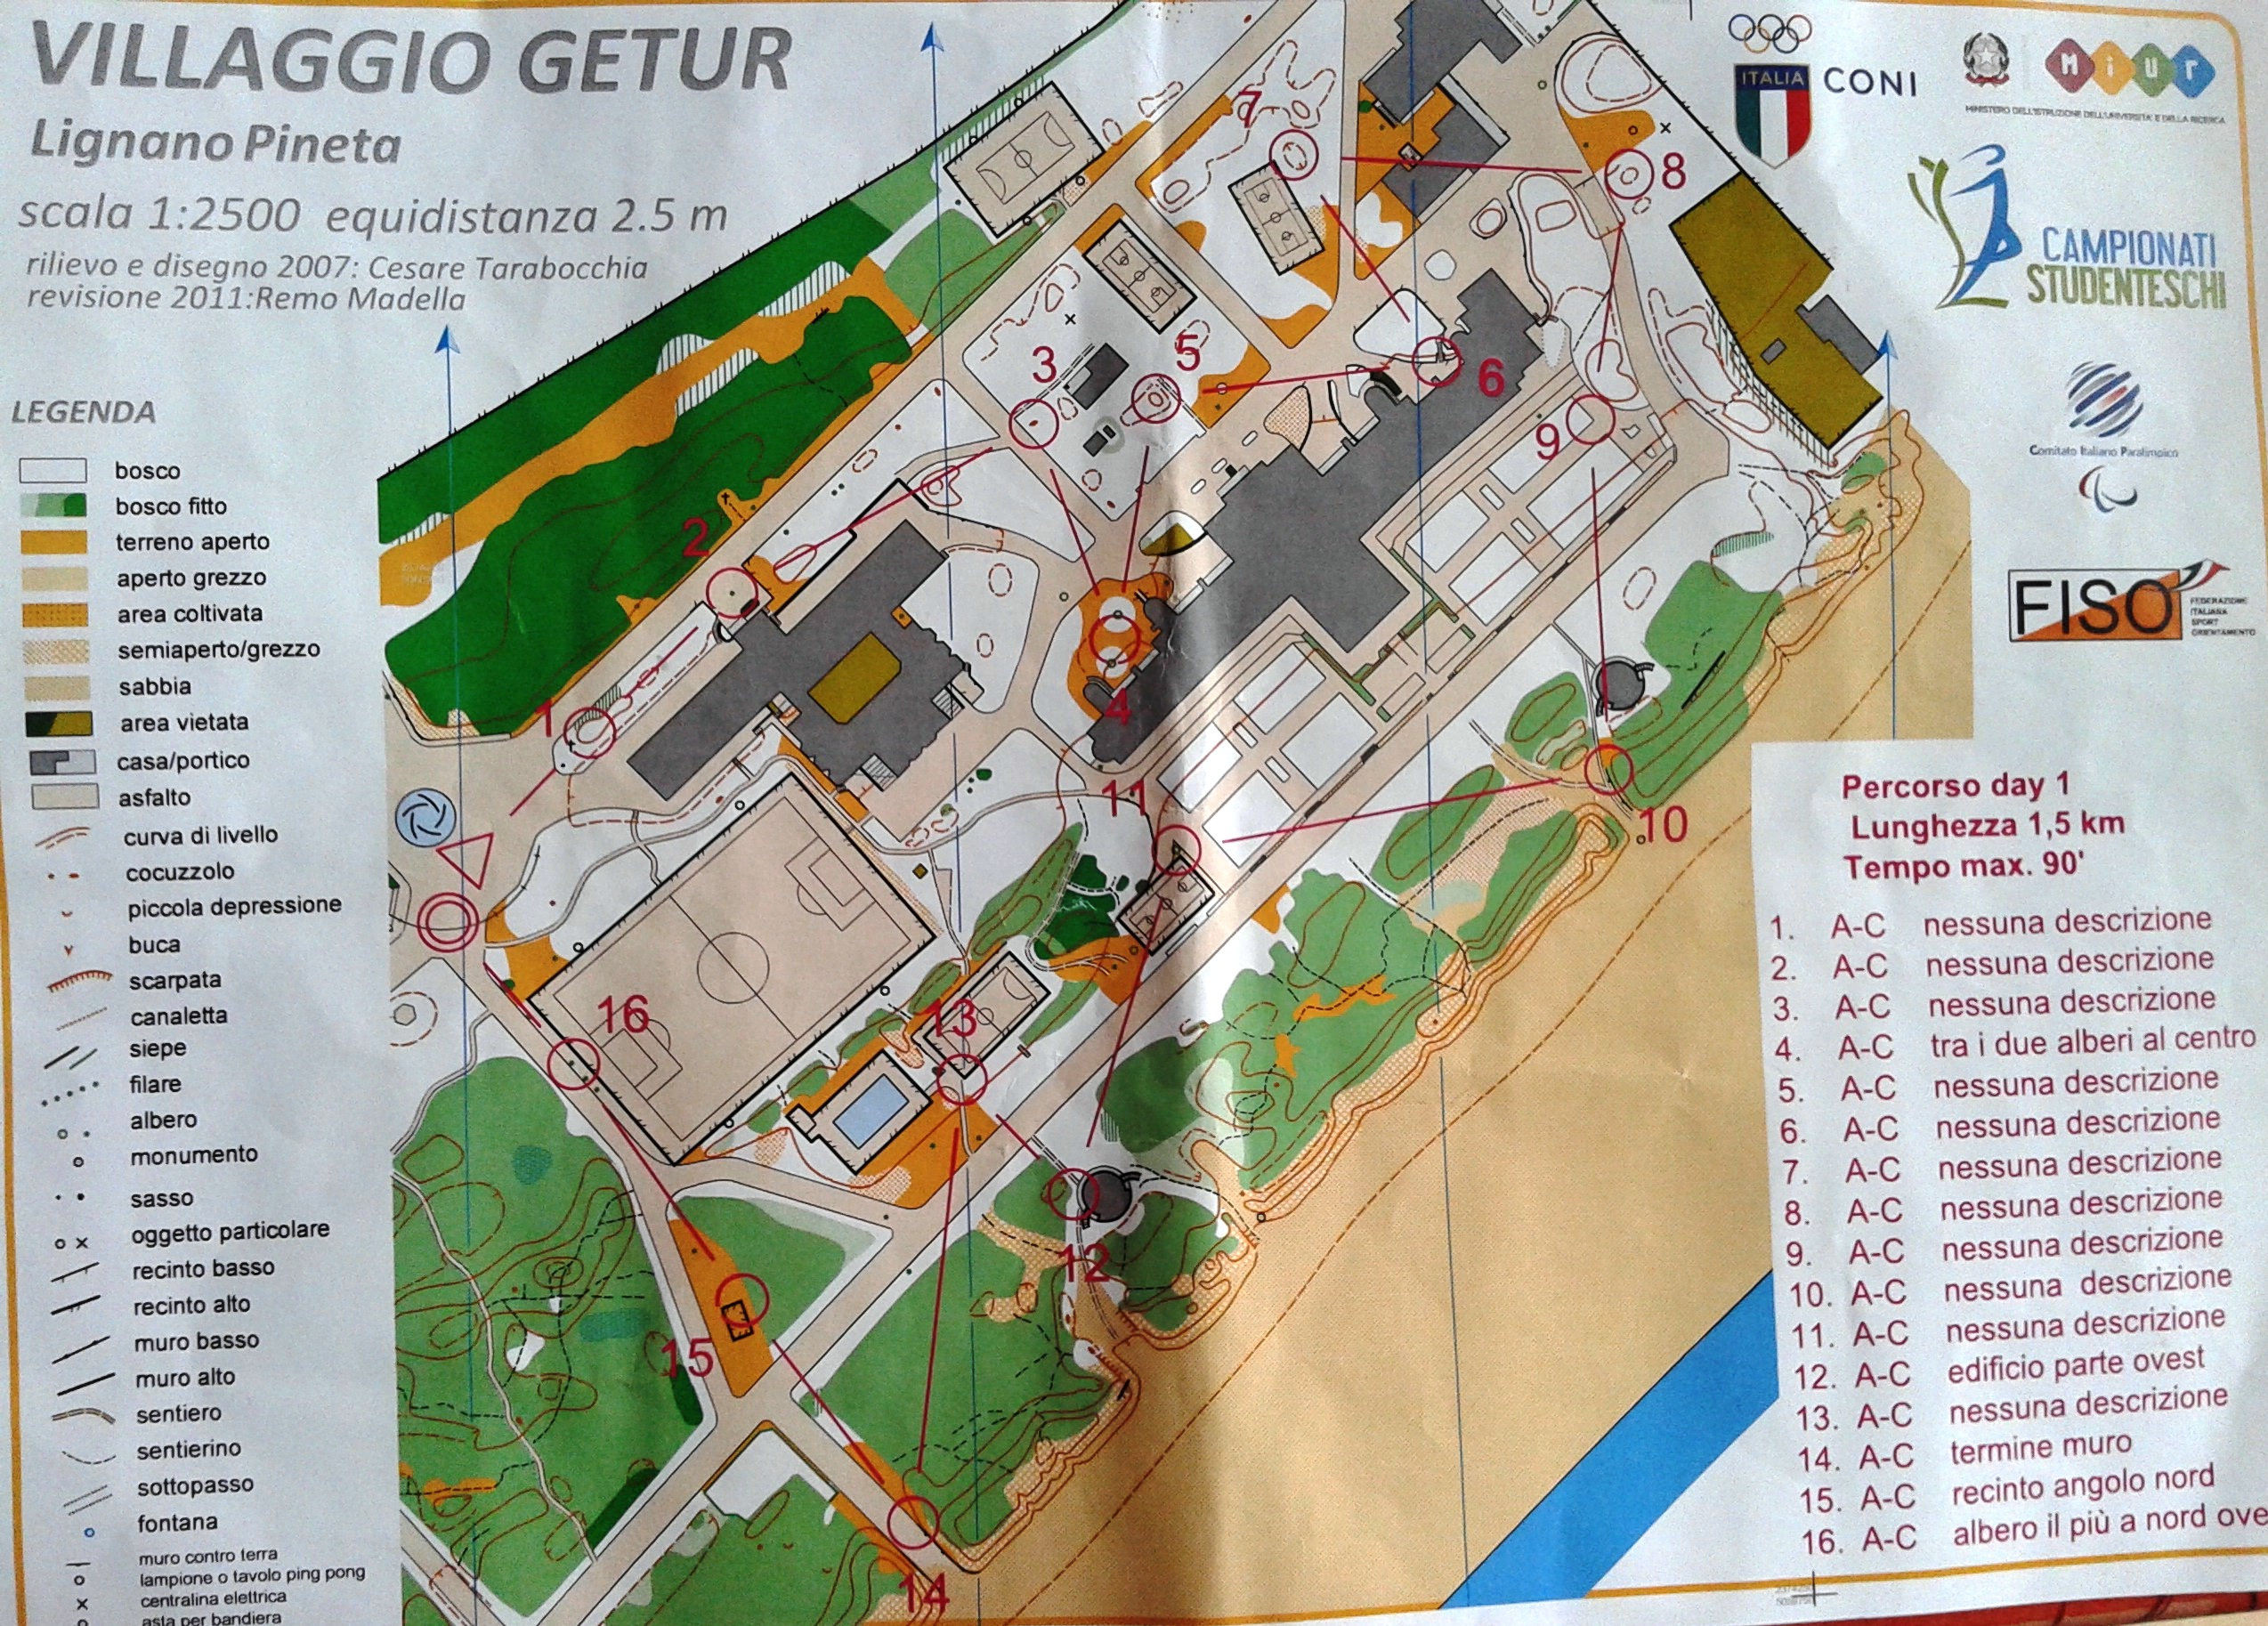 GSS 2014 Trail-O checking course (22/09/2014)